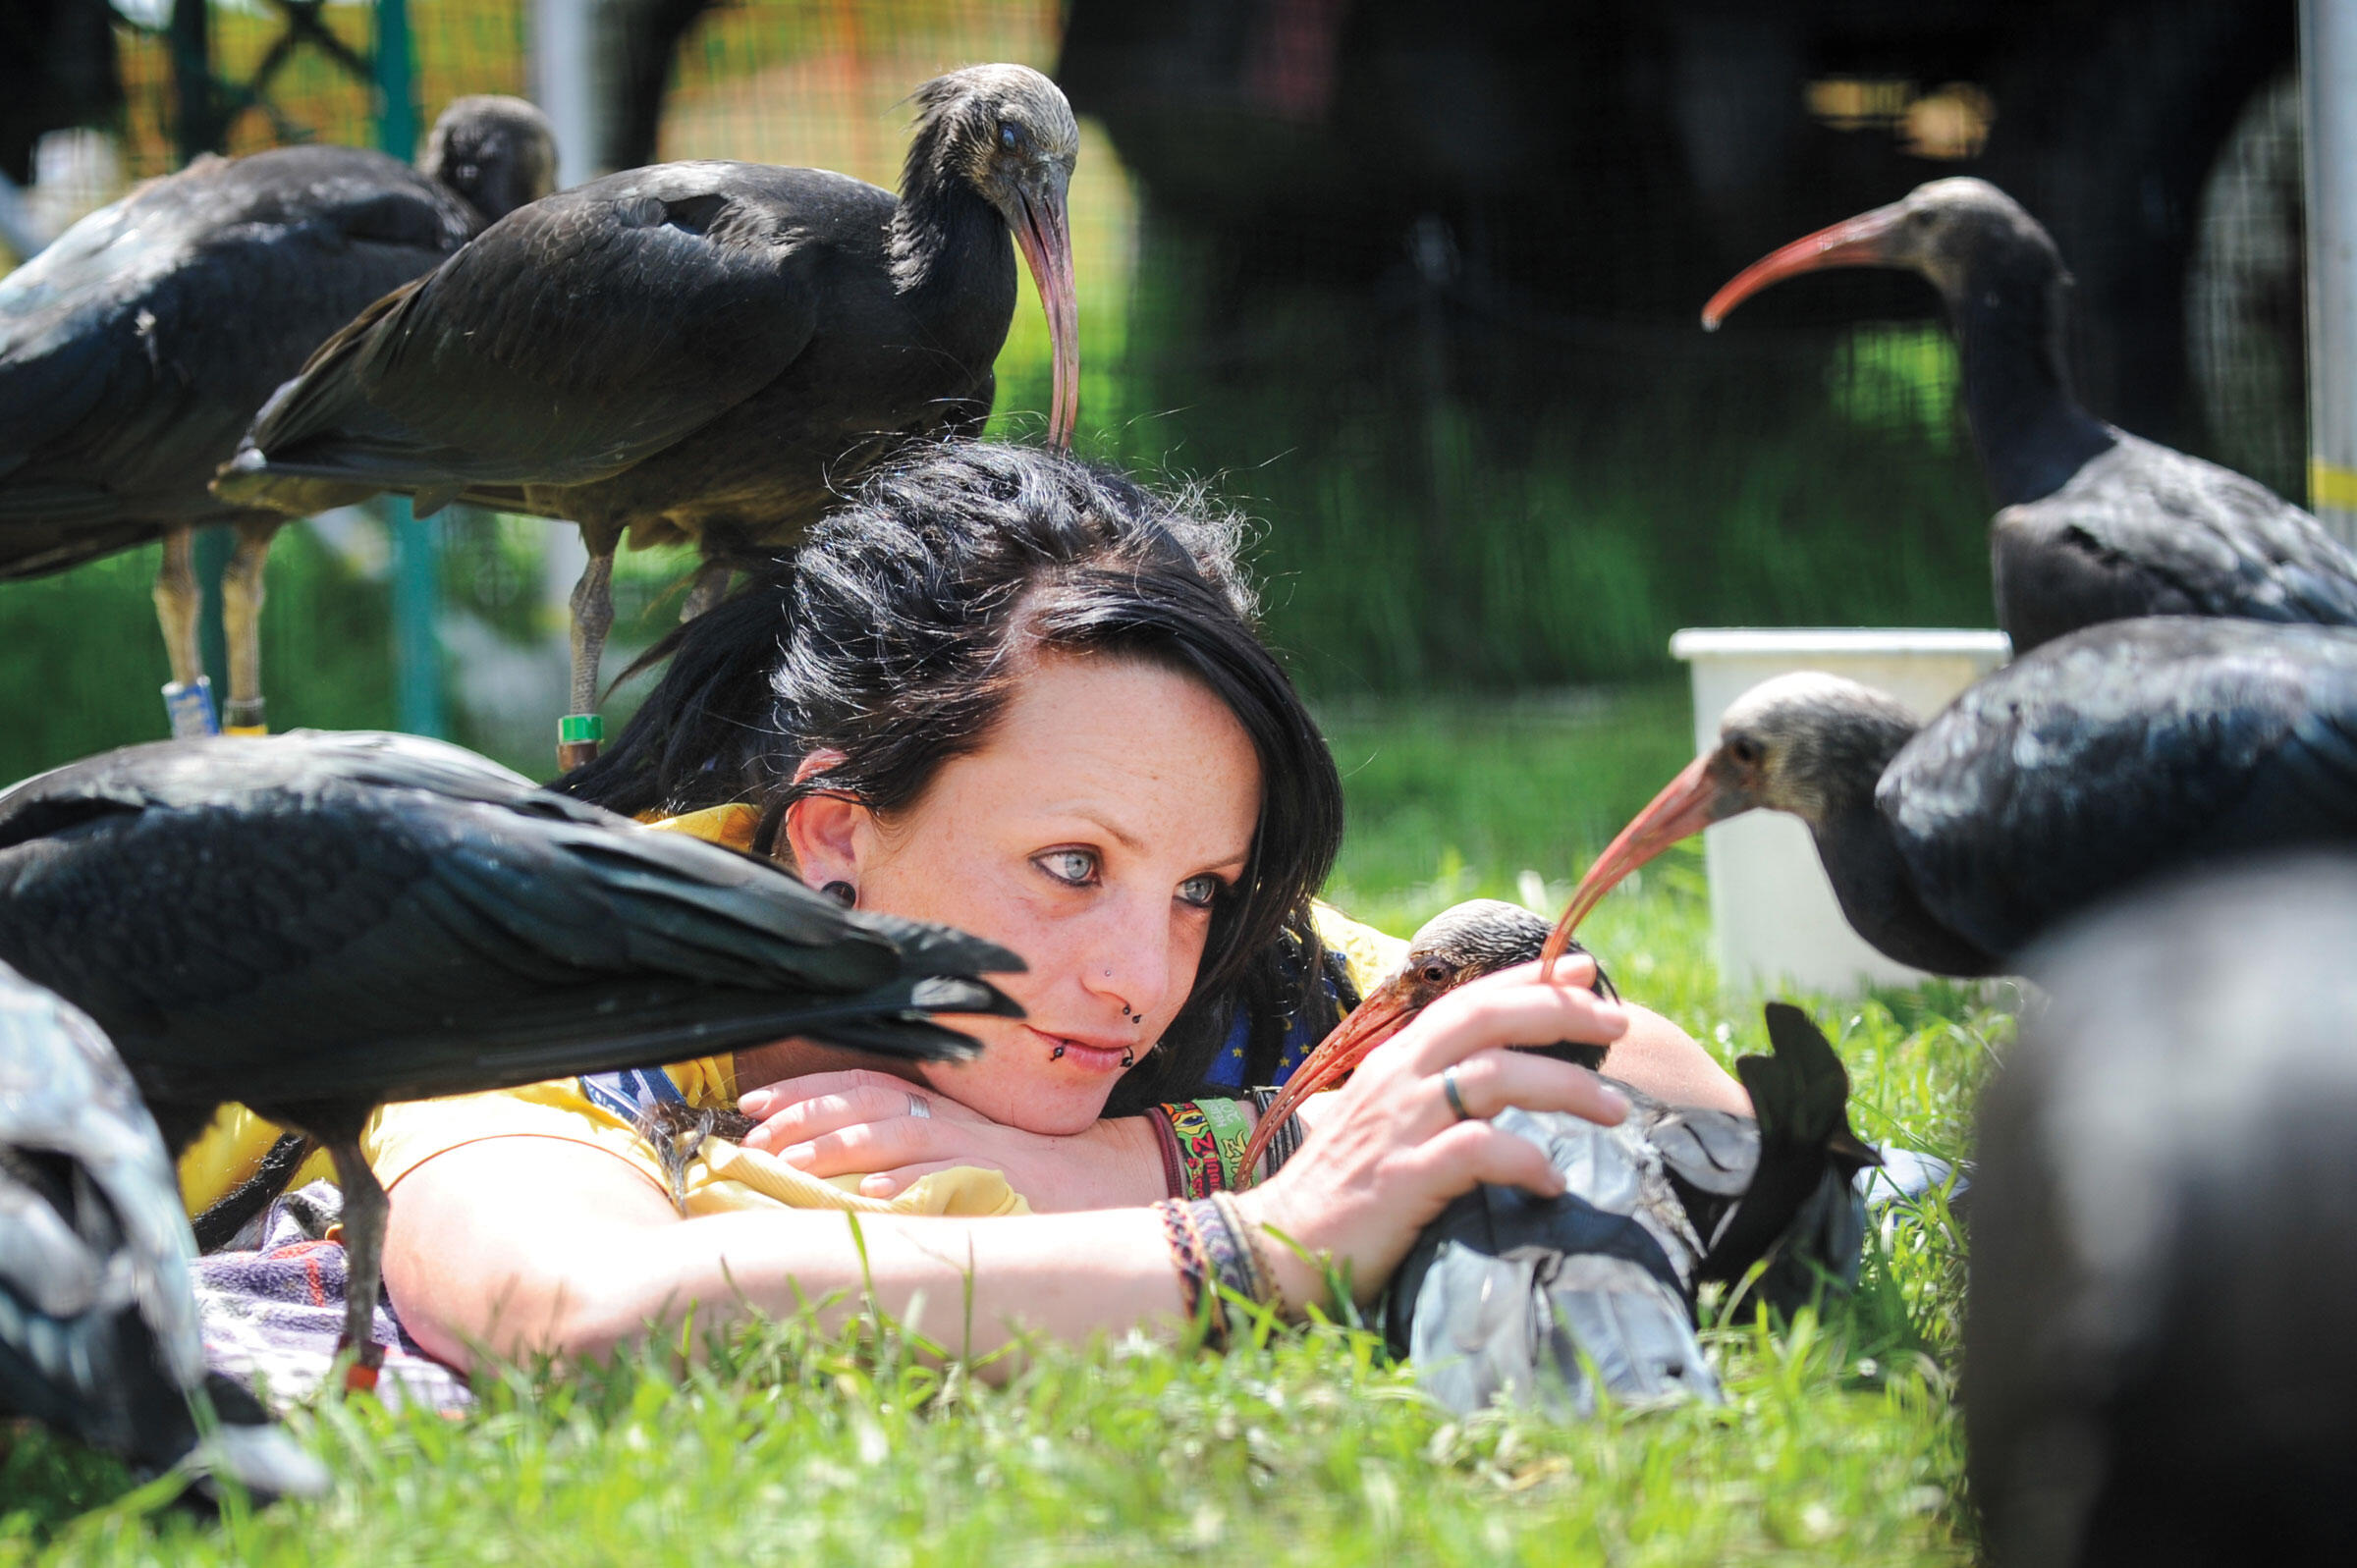 Esterer bonds with young ibises. Esther Horvath